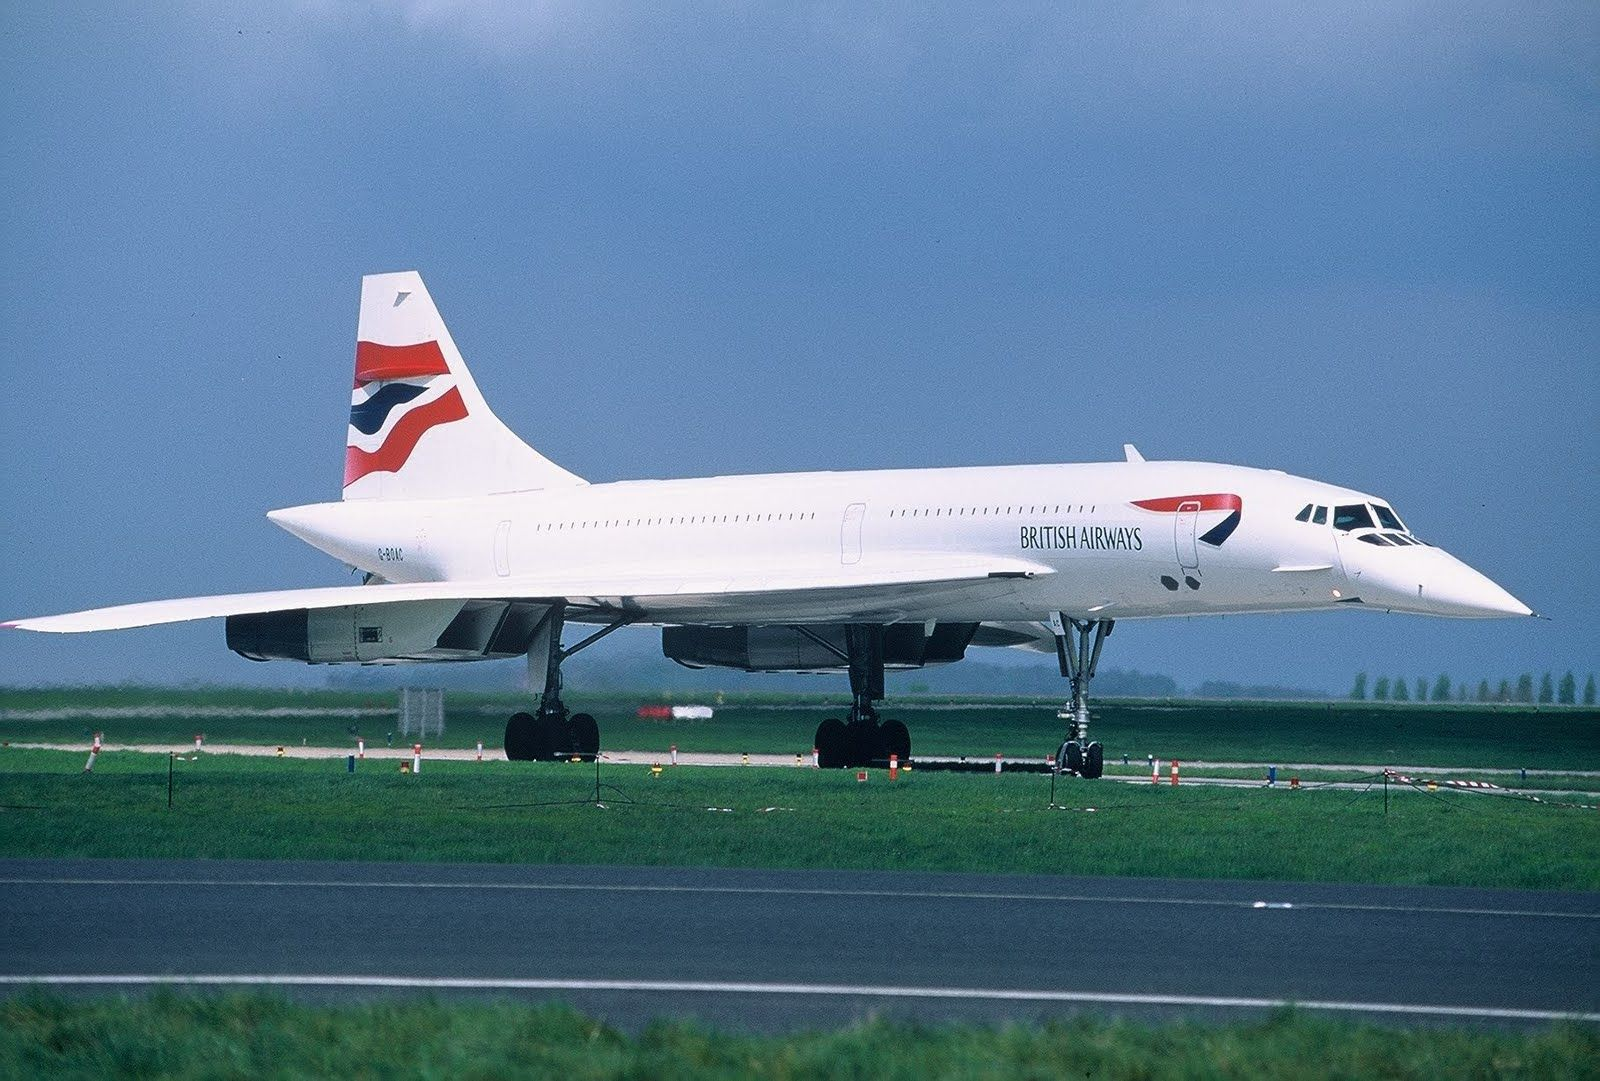 British Airways is one of two concorde's